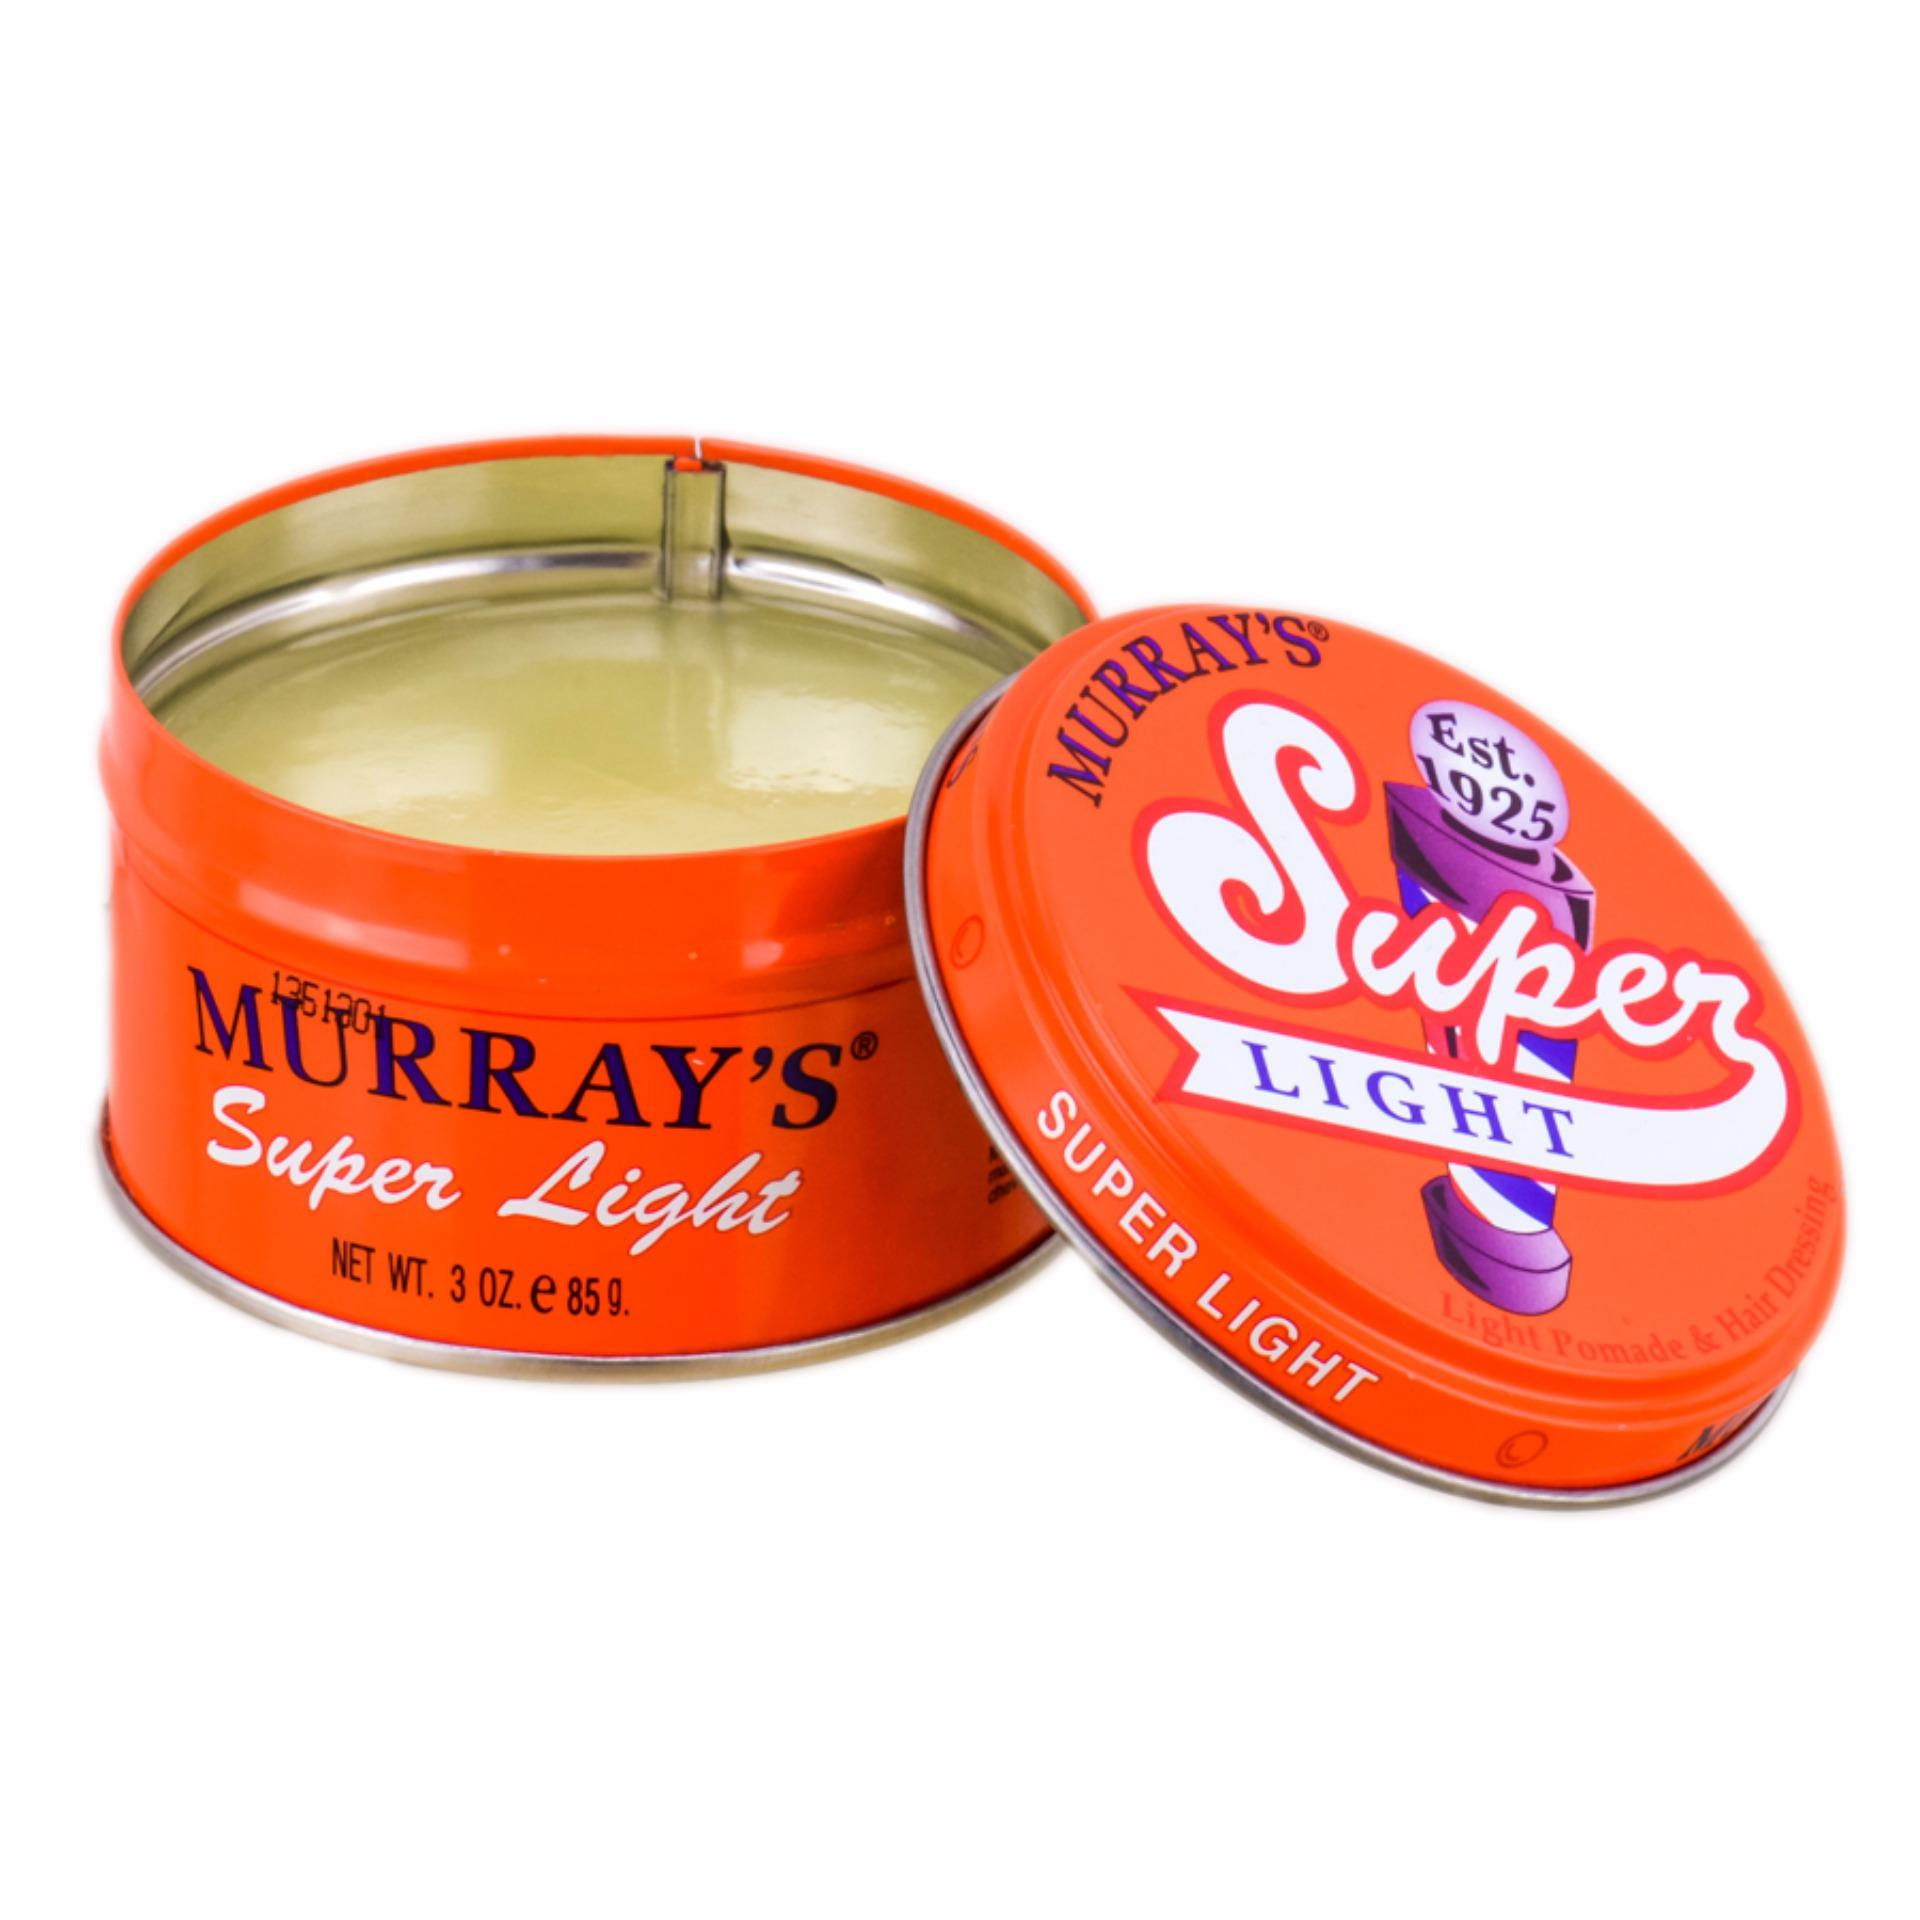 HARGA Pomade Murray Murrays Superlight Oilbased Terbaik